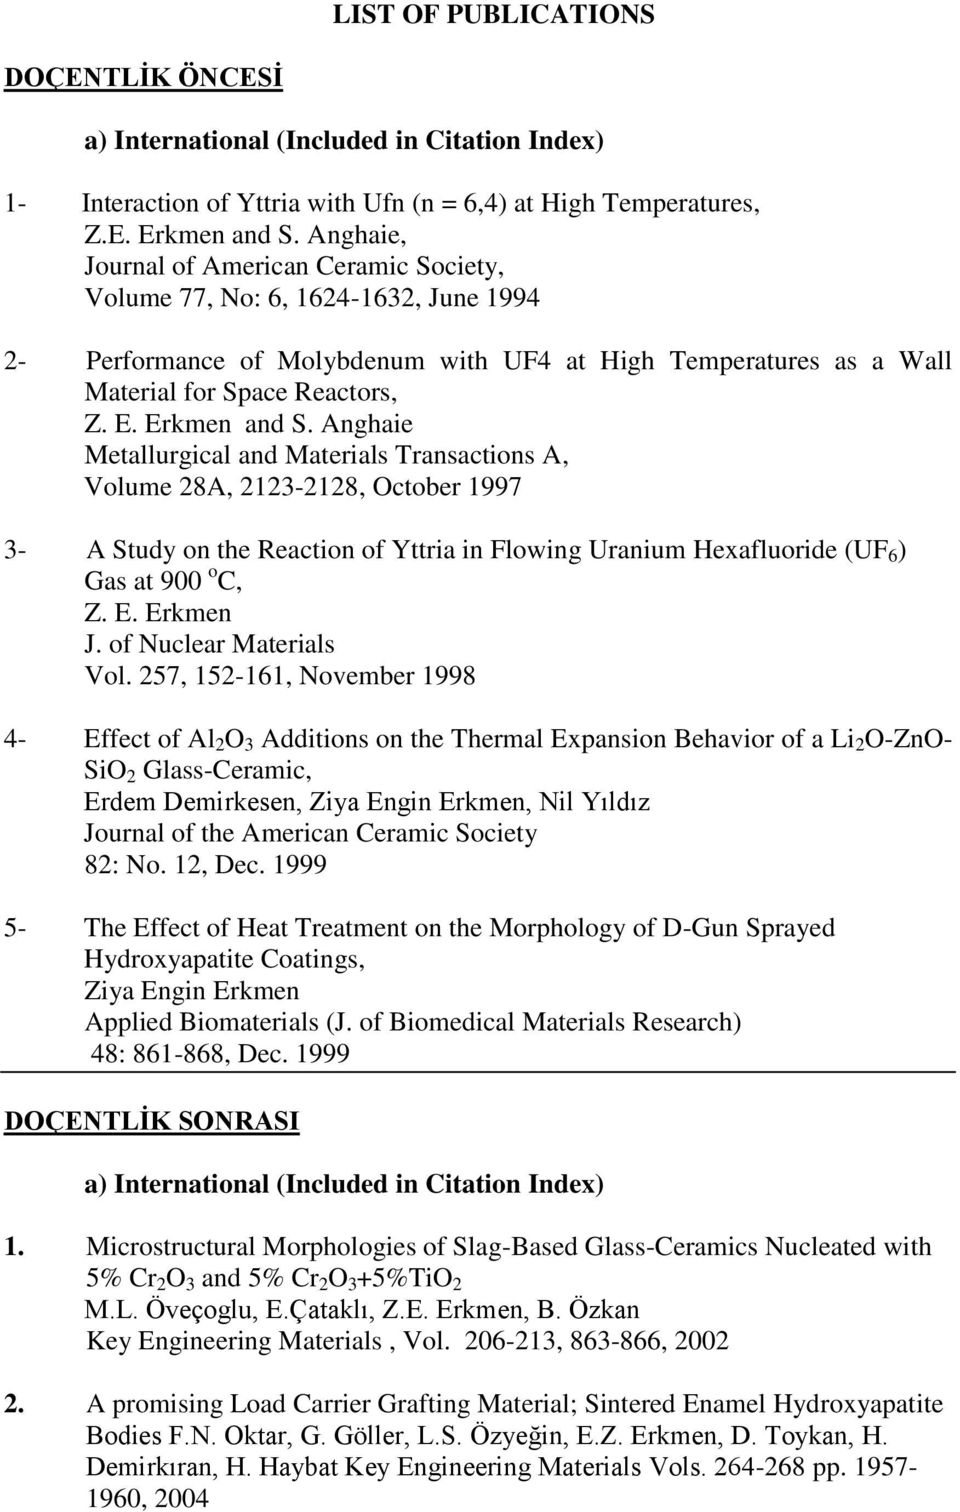 Erkmen and S. Anghaie Metallurgical and Materials Transactions A, Volume 28A, 2123-2128, October 1997 3- A Study on the Reaction of Yttria in Flowing Uranium Hexafluoride (UF 6 ) Gas at 900 o C, Z. E.